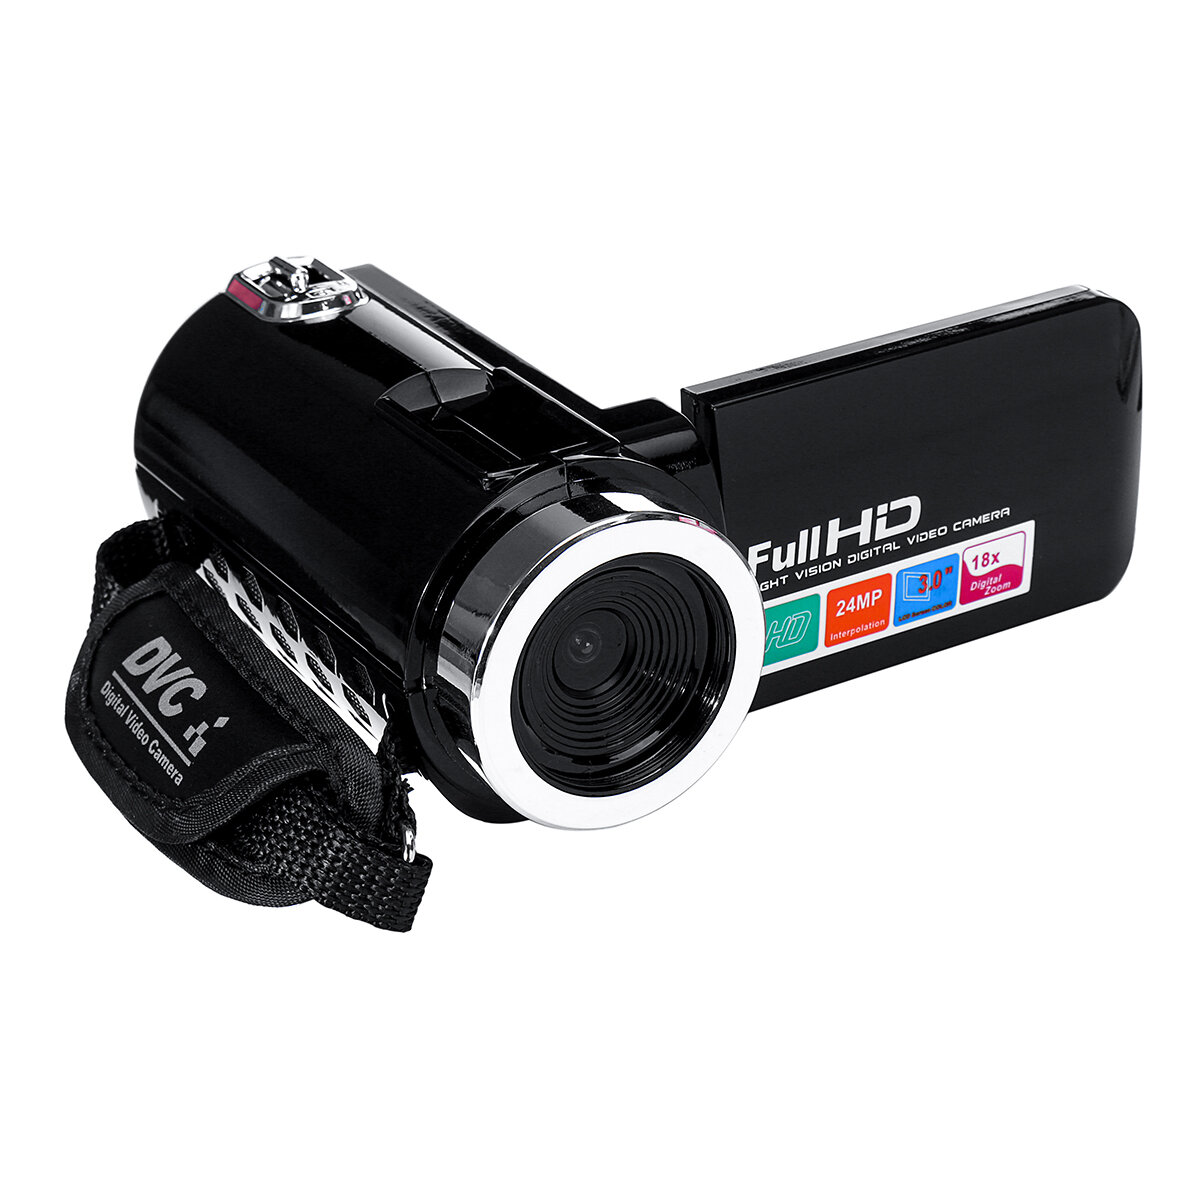 4K Full HD 1080P 24MP 18X Zoom 3 Inch LCD Digital Camcorder Video DV Camera 5.0MP CMOS Sensor for YouTube Vlogging, Banggood  - buy with discount